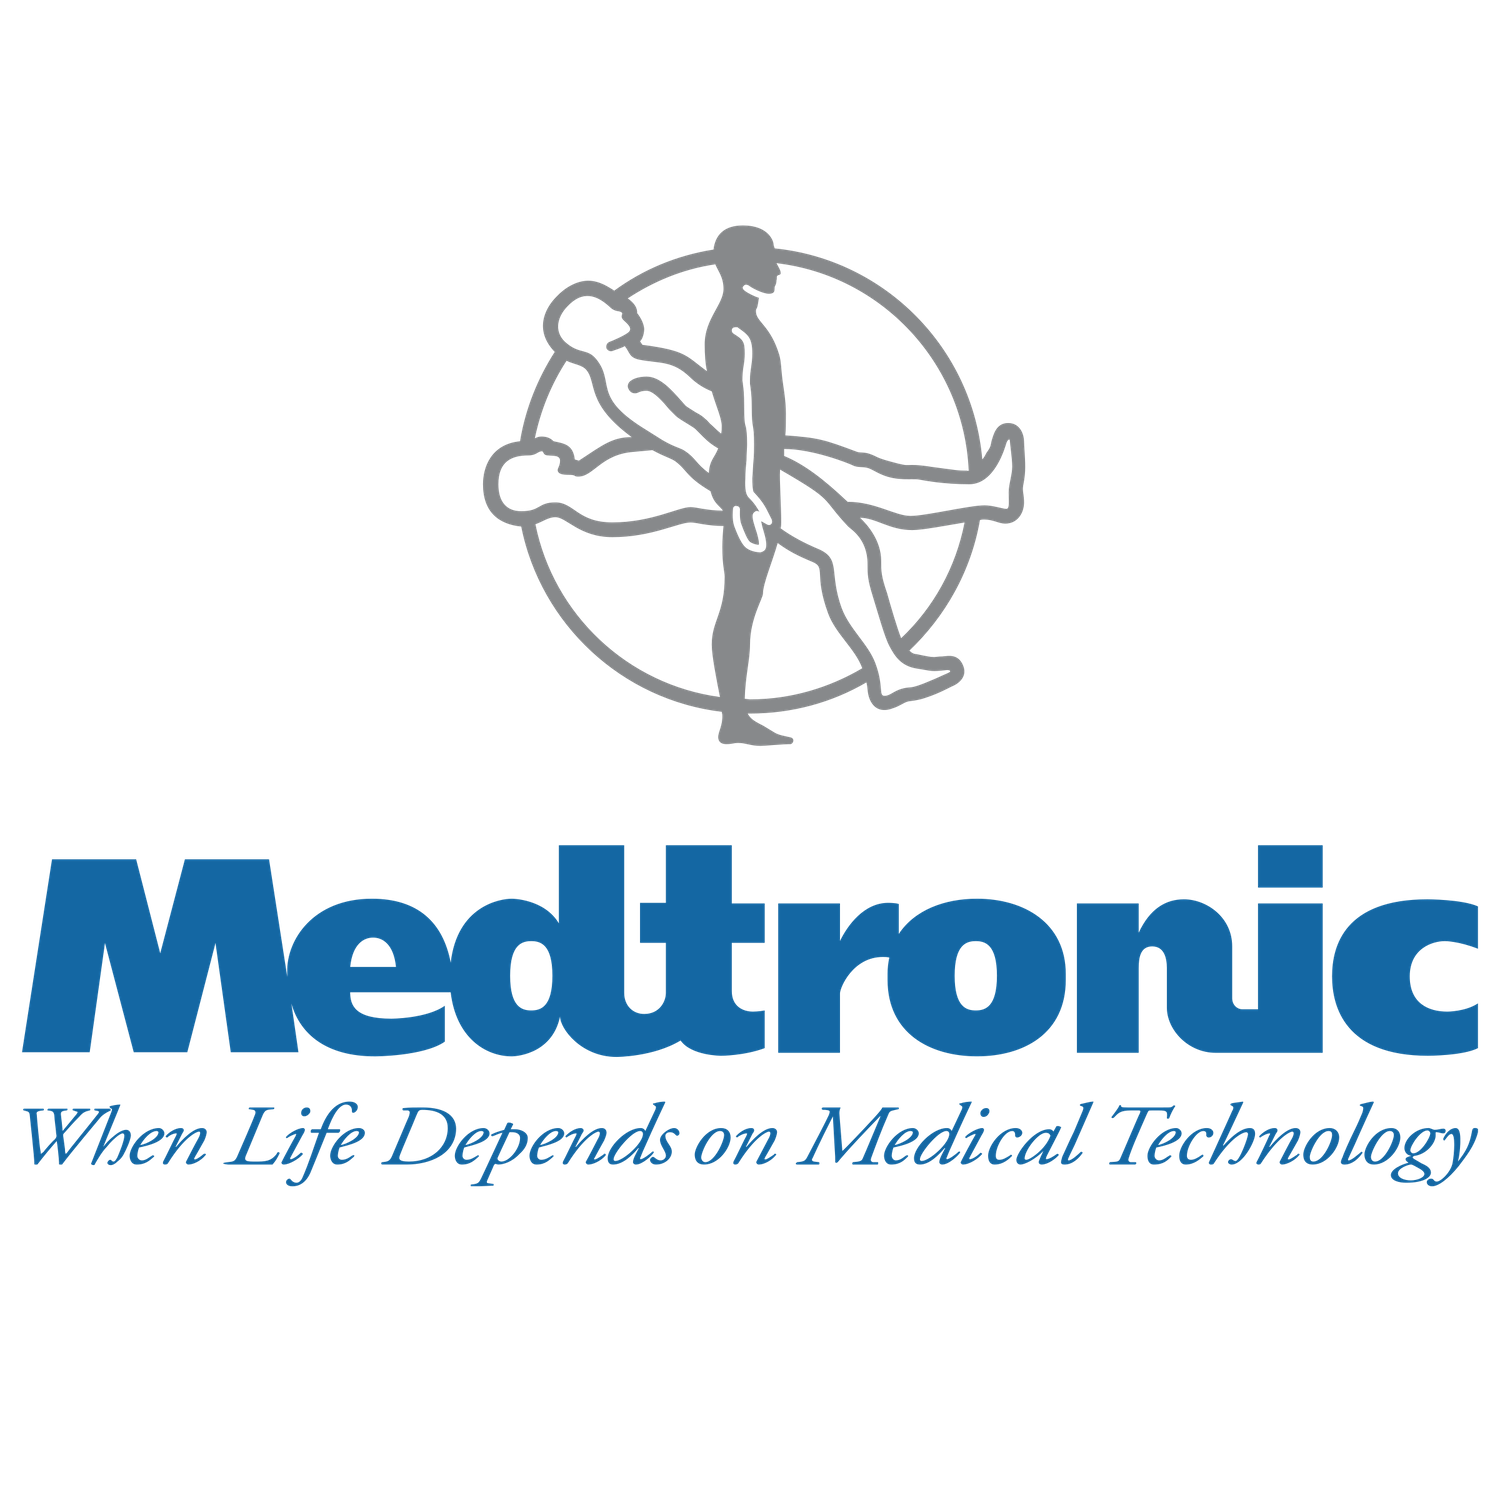 medtronic-logo-png-transparent.png